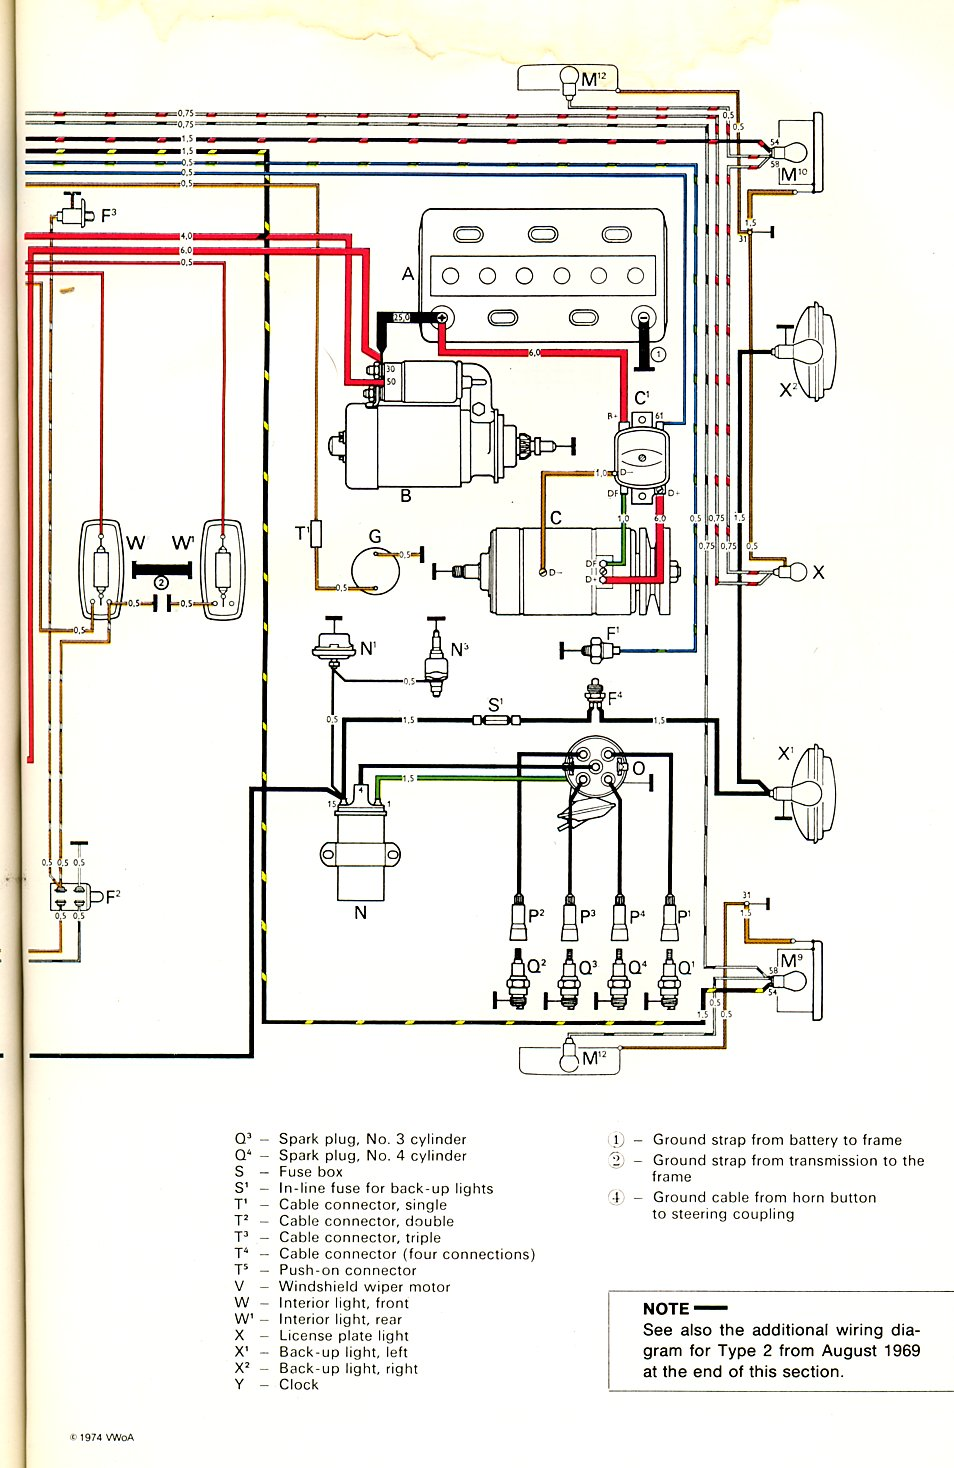 medium resolution of vw pick up fuse diagram wiring library rh 73 codingcommunity de vw 1600 engine wiring diagram